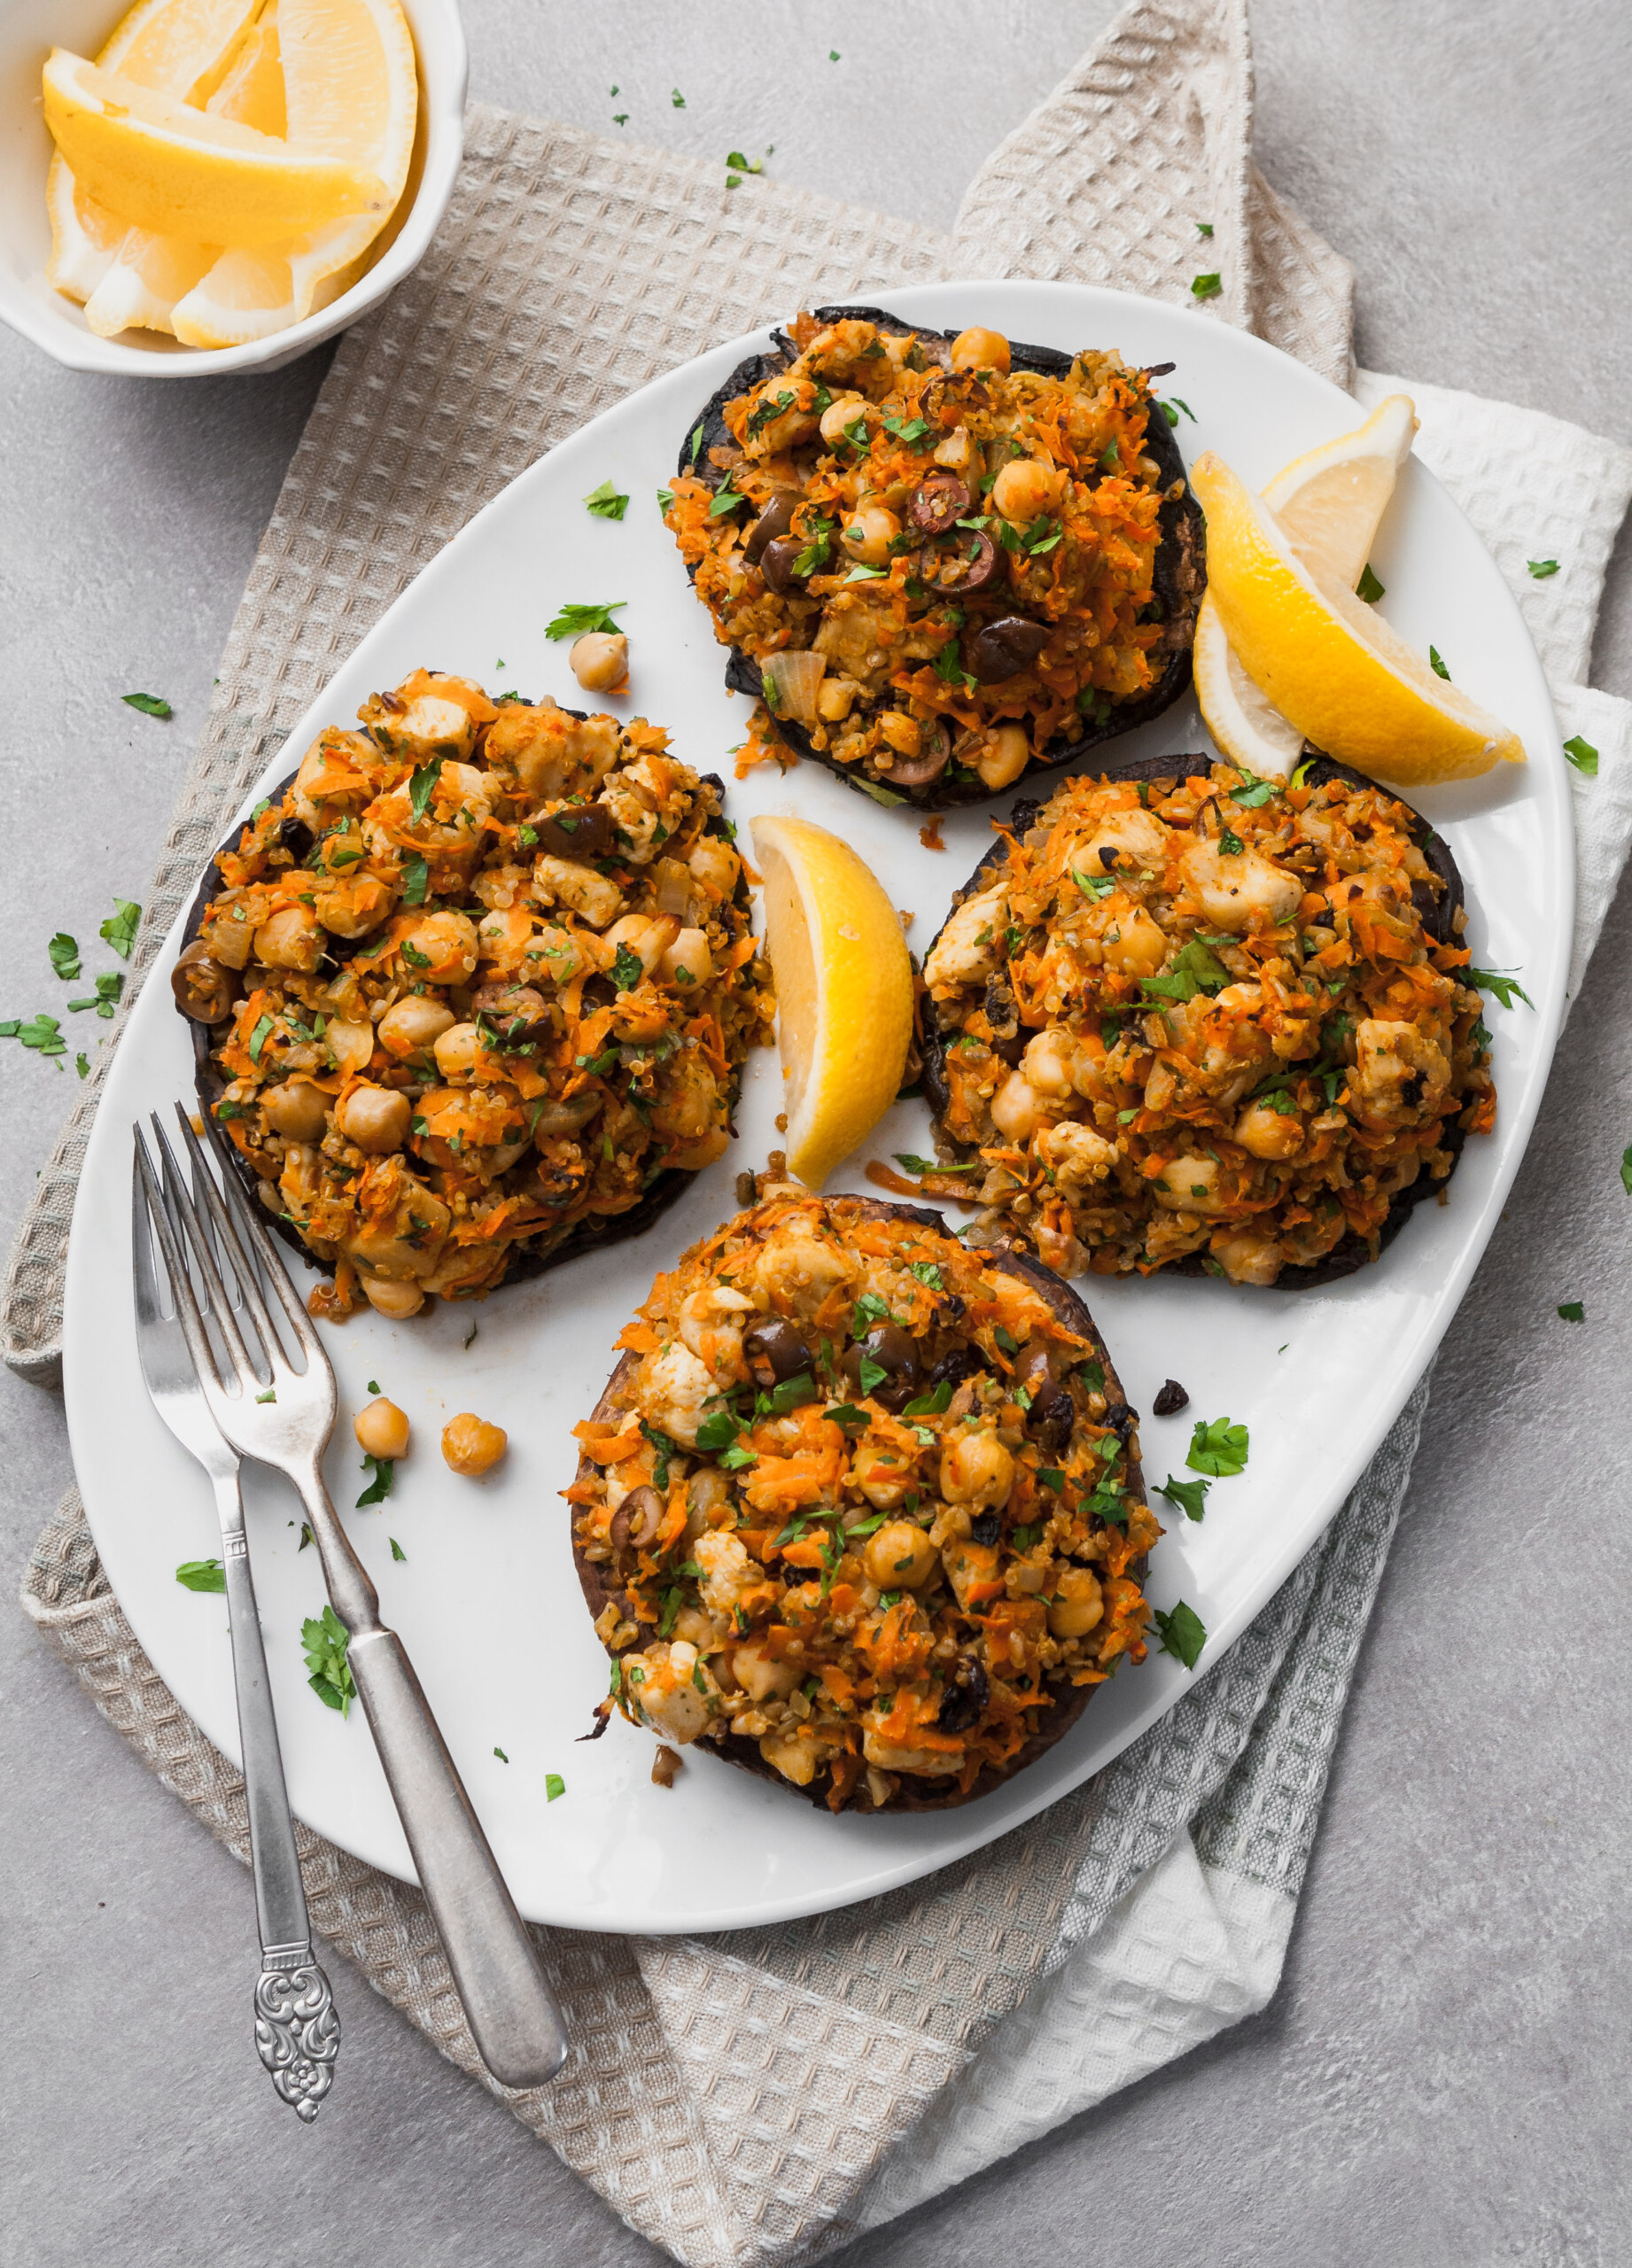 Packed with bold flavors and textures, these Moroccan Stuffed Portobellos with carrots, chickpeas, and ancient grains are not only healthy and satisfying, but easy to make and come together in under an hour!   from Lauren Grant of Zestful Kitchen